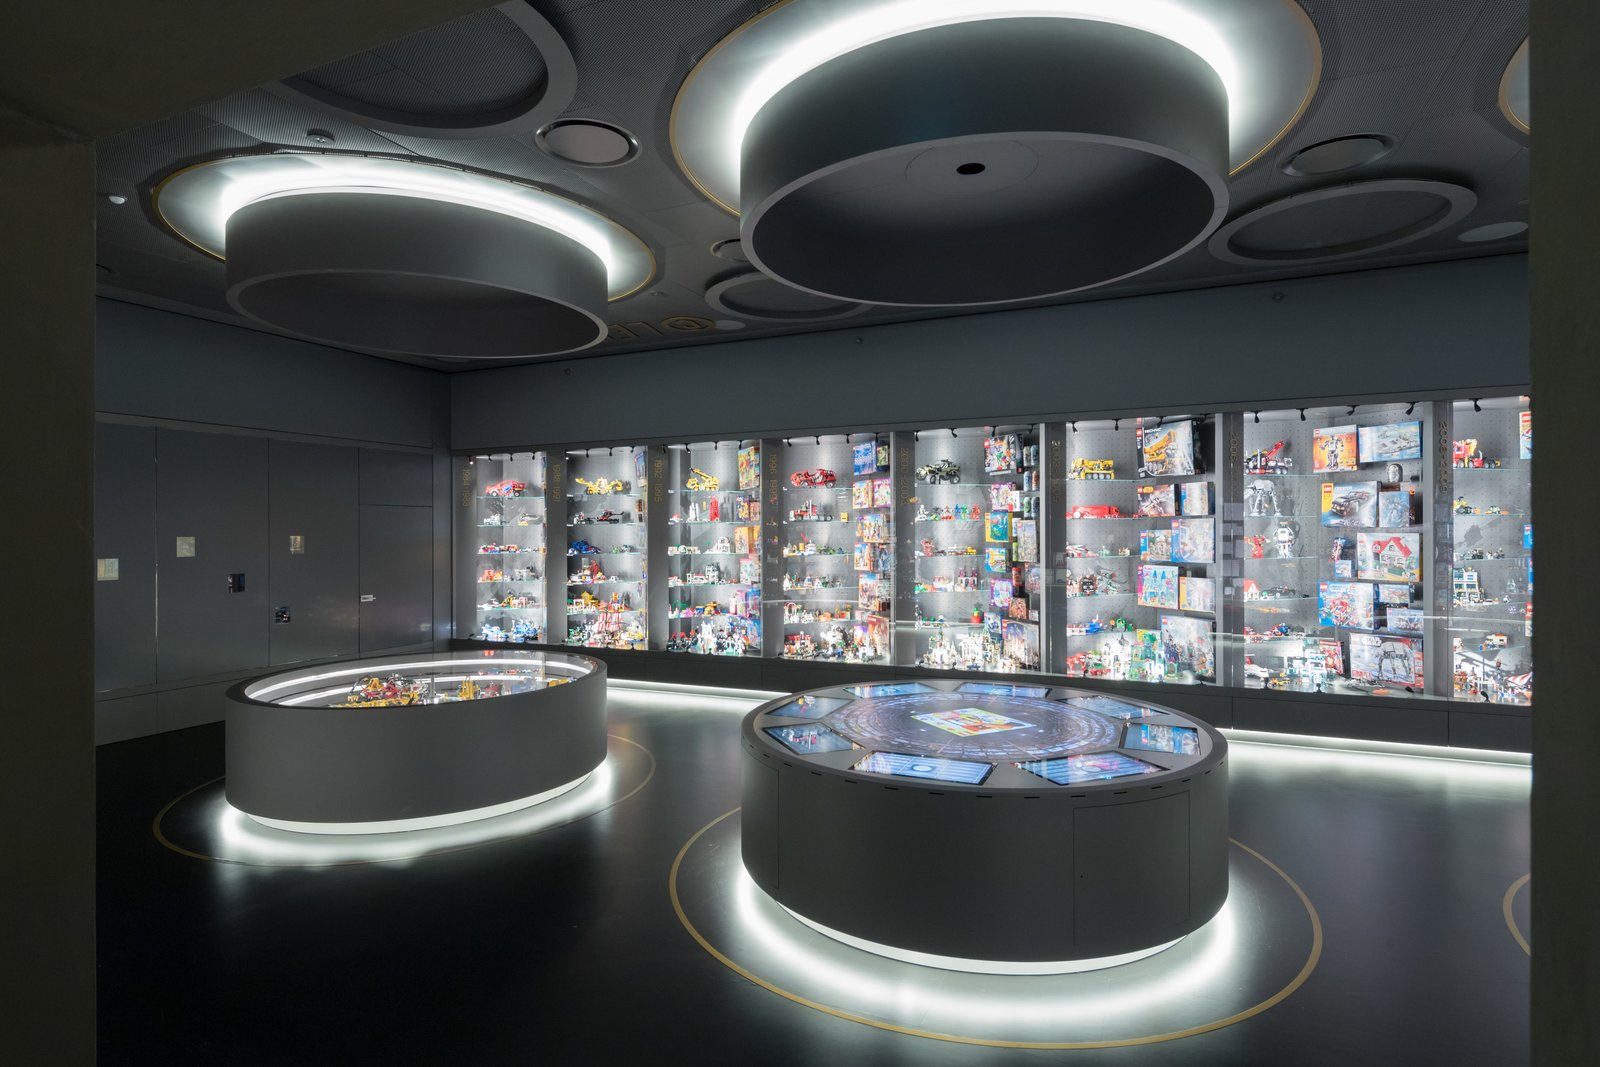 Photo 9 of 10 in Spend an Unforgettable Night in Denmark's New LEGO House